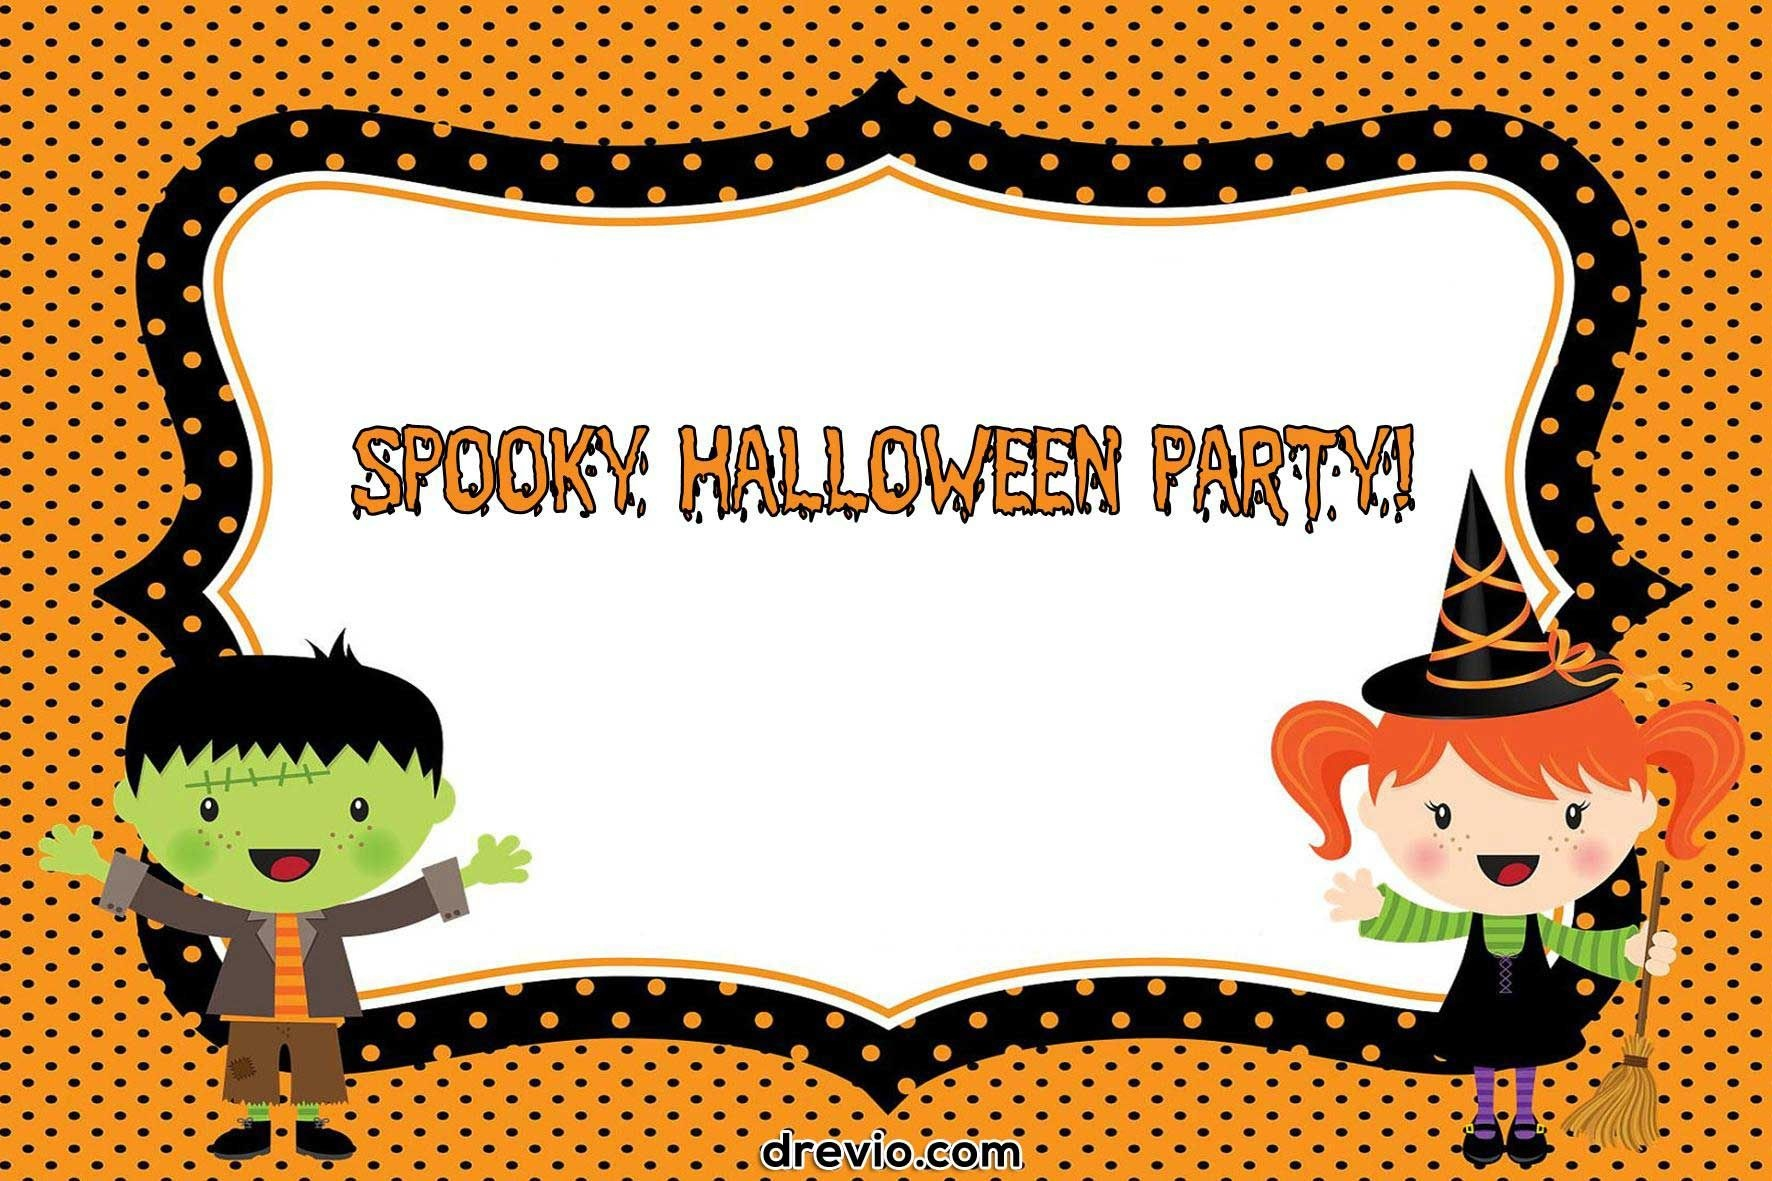 Free Printable Halloween Invitations Templates | Free Printable - Free Printable Halloween Invitations For Adults